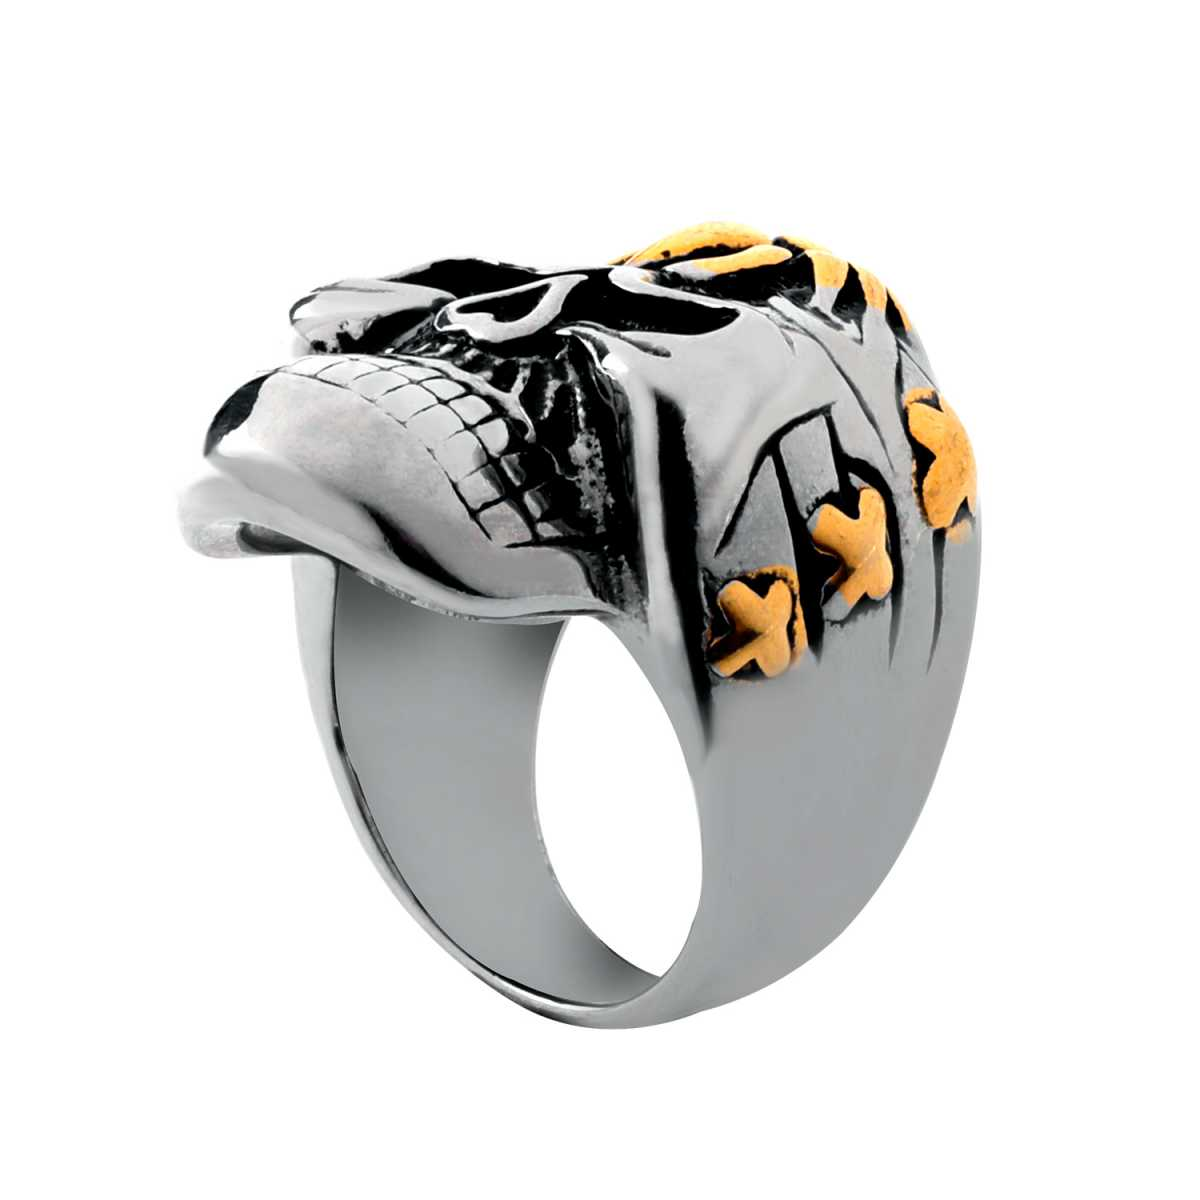 Silver Shine Stainless Steel Scar Face Scorpion Skull Bikers Ring for Boys and Men